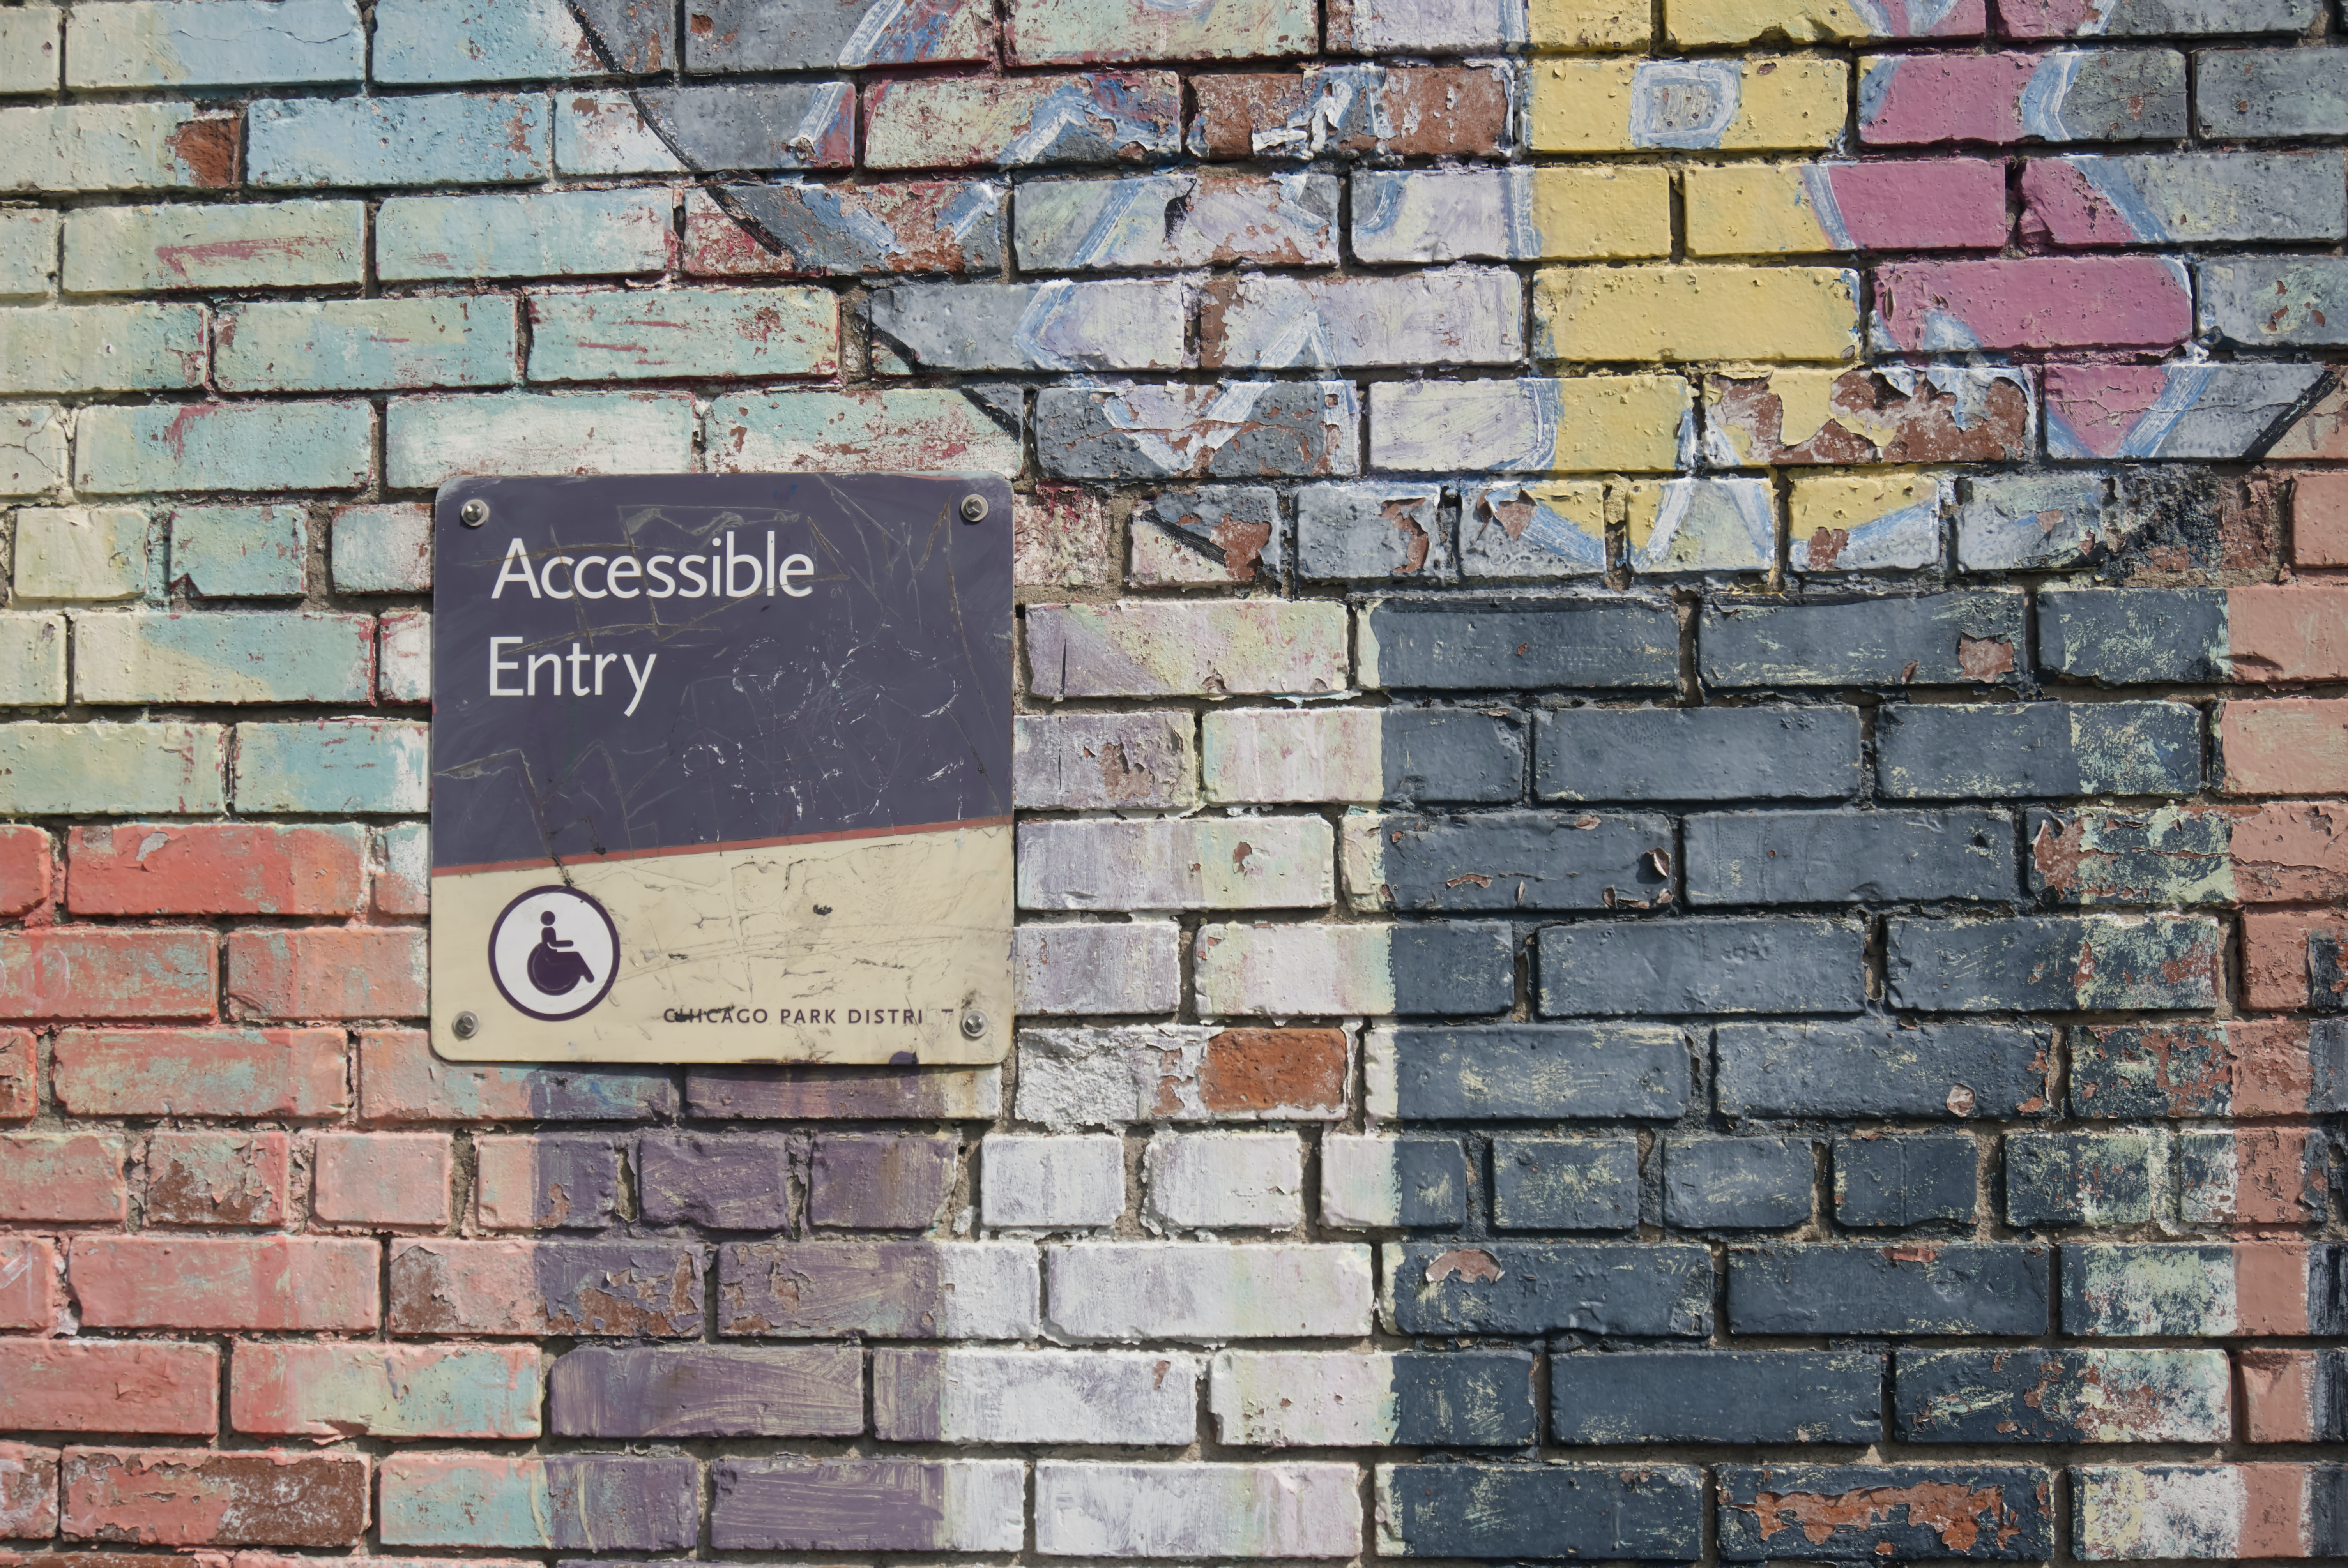 Accessibility is now our middle name